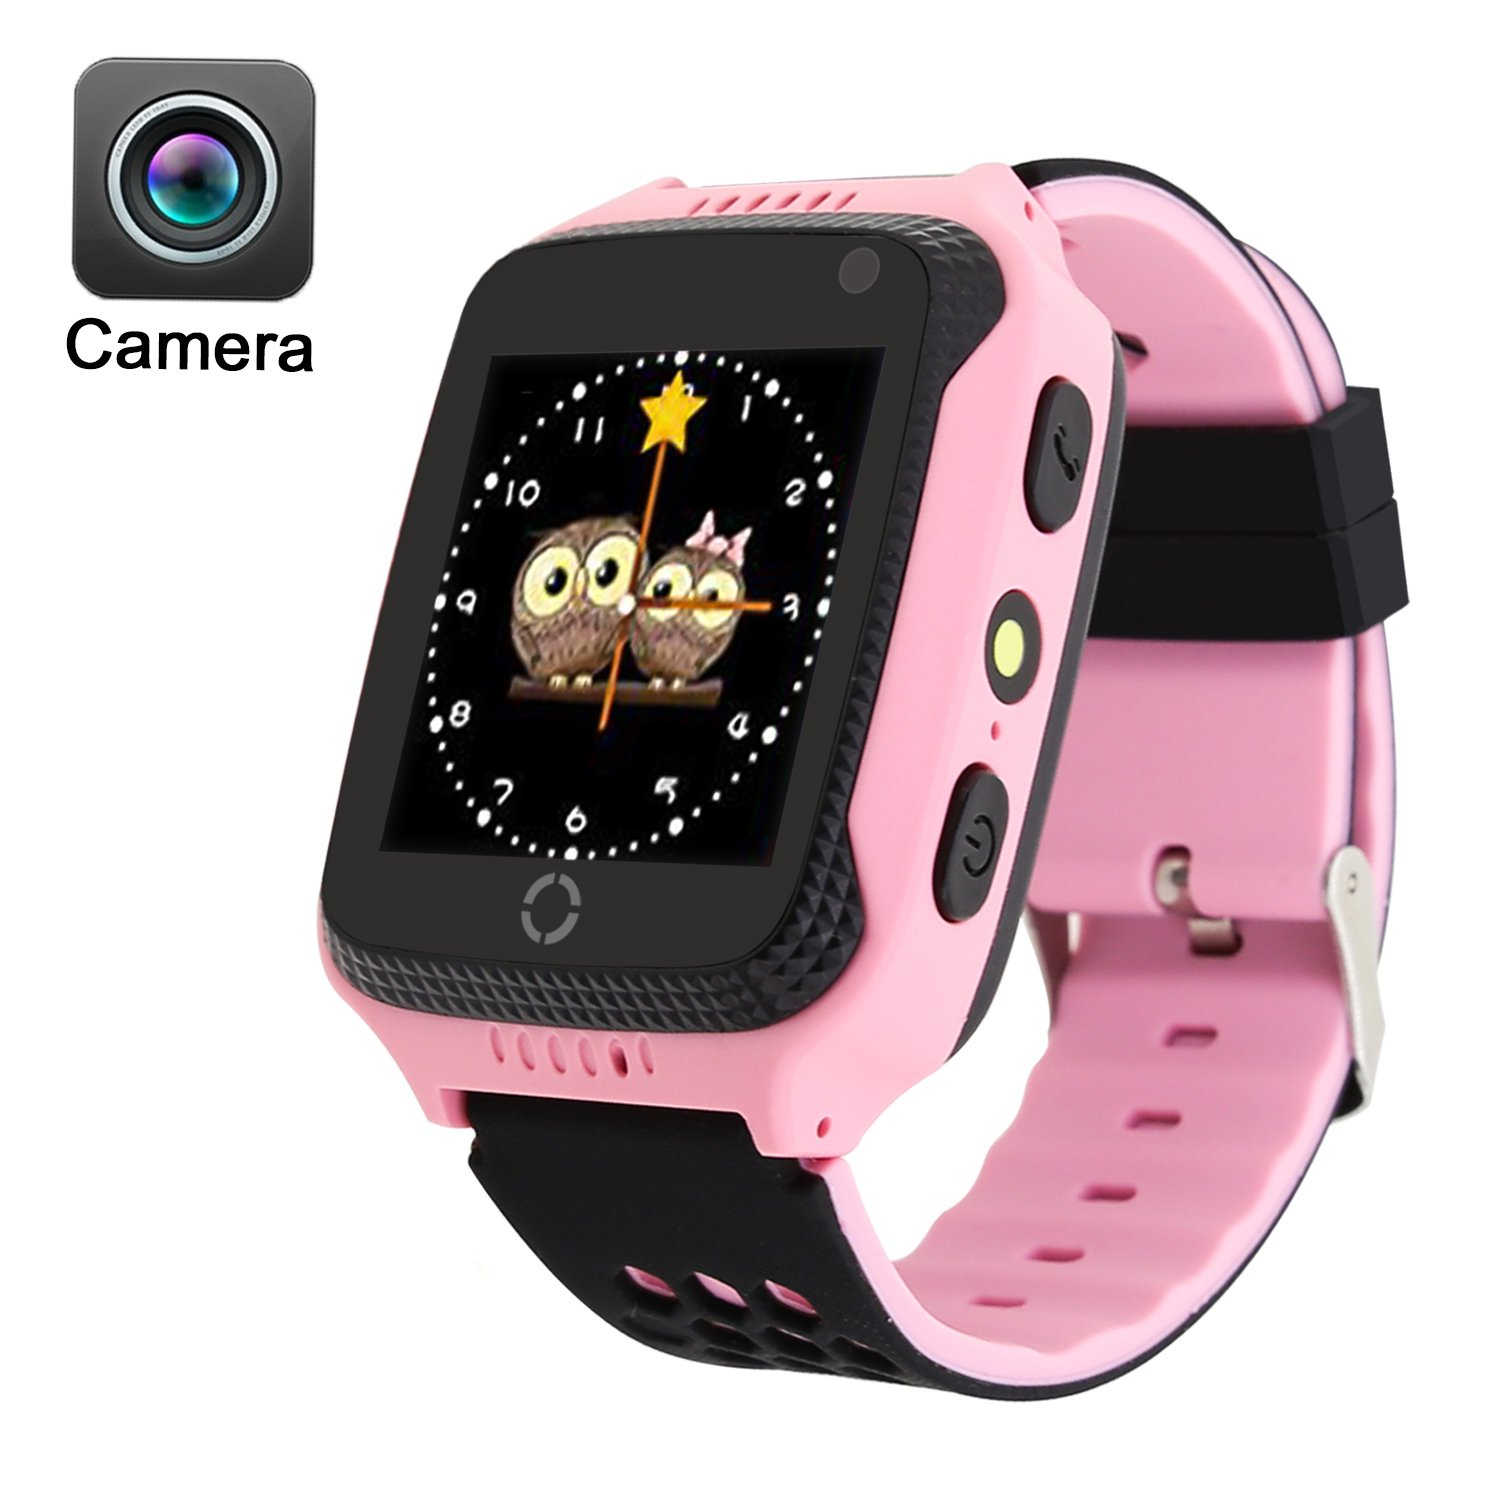 Kid Smart Watch, Mictchz Kids GPS Tracker Smart Watch with Camera SIM Calls SOS Anti-lost GPS + LBS Smart Watch for Children Boys Girls for Android iPhone Smart Watch (Pink ( Camera ))